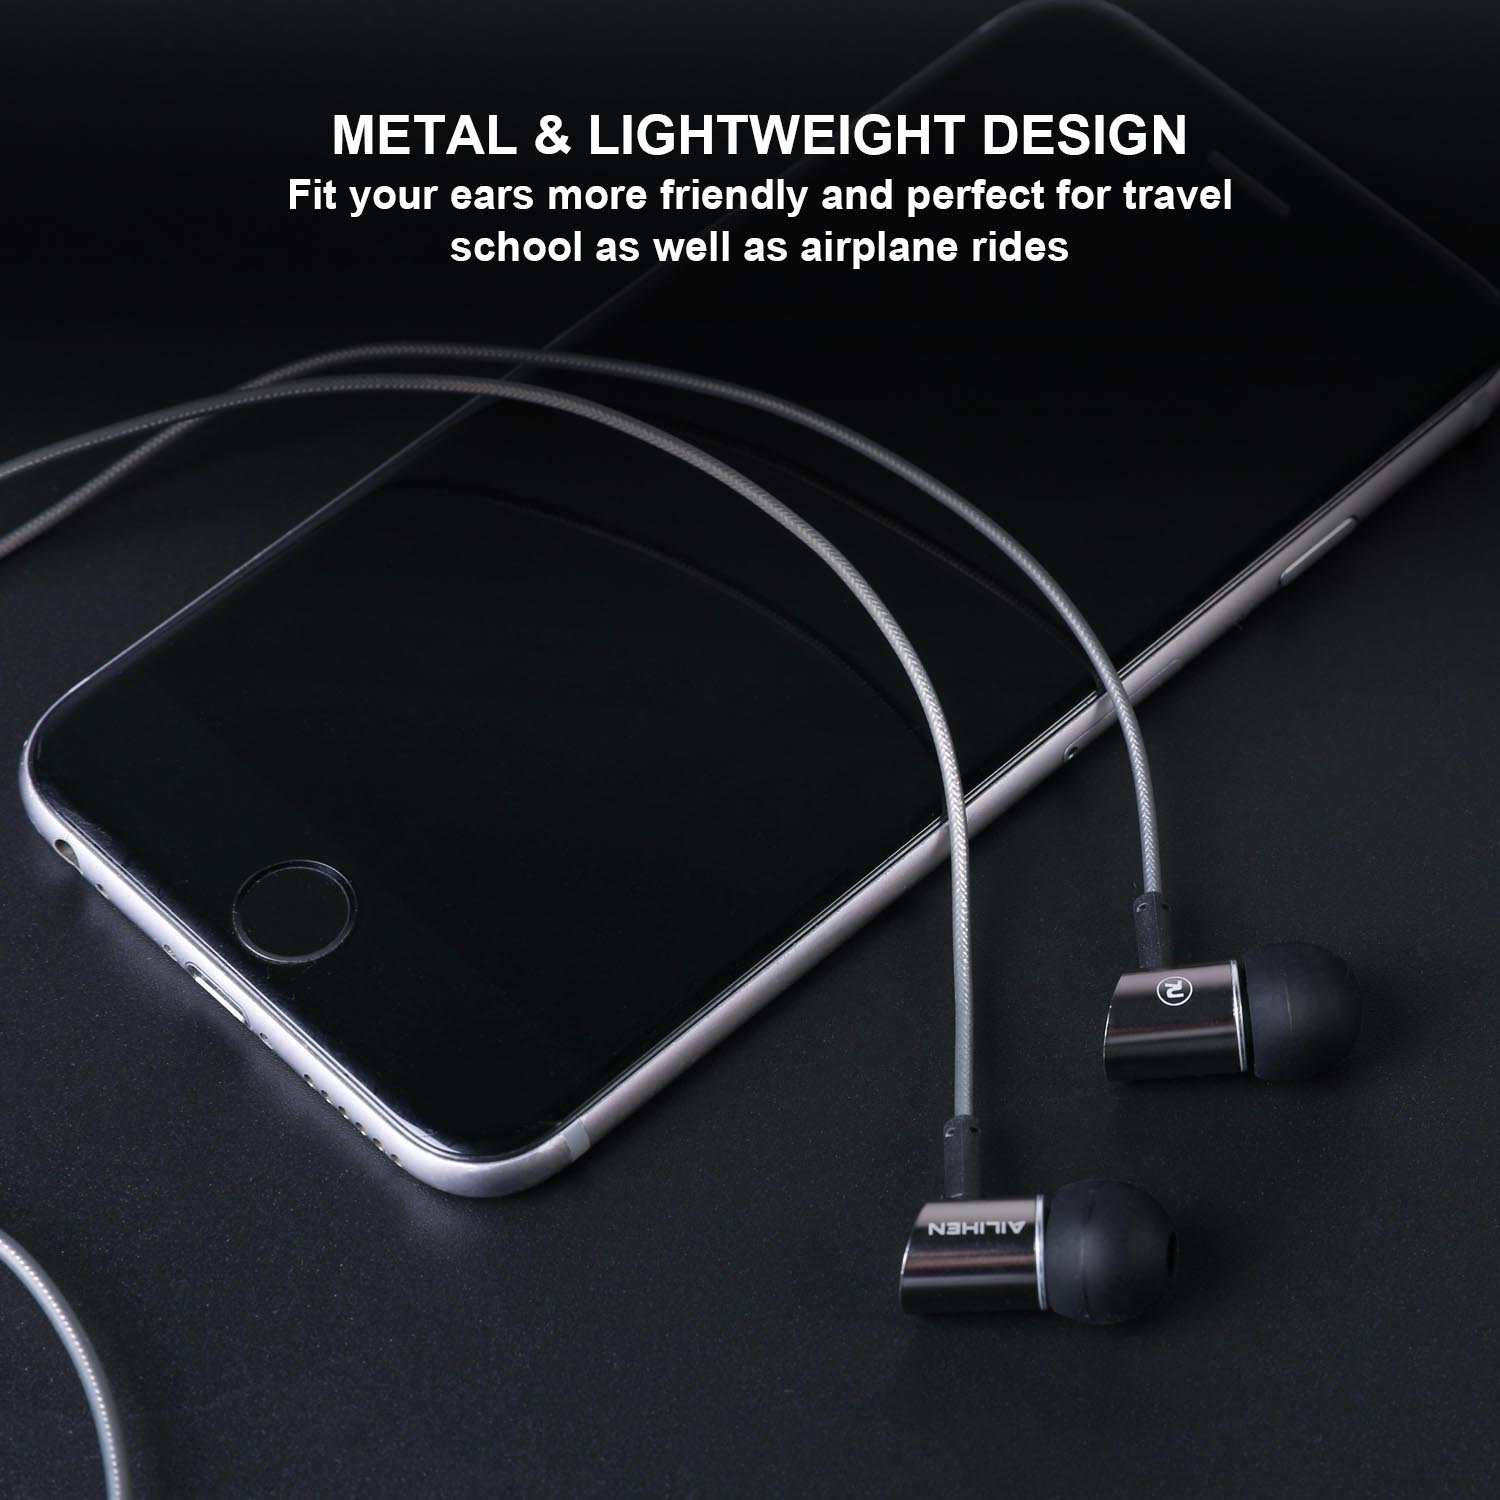 AILIHEN Metal Earbuds with Microphone In Ear Headphones Wired Earphones for Android/IOS Cell Phones iPad iPod Laptop Tablet Computer by AILIHEN (Image #5)